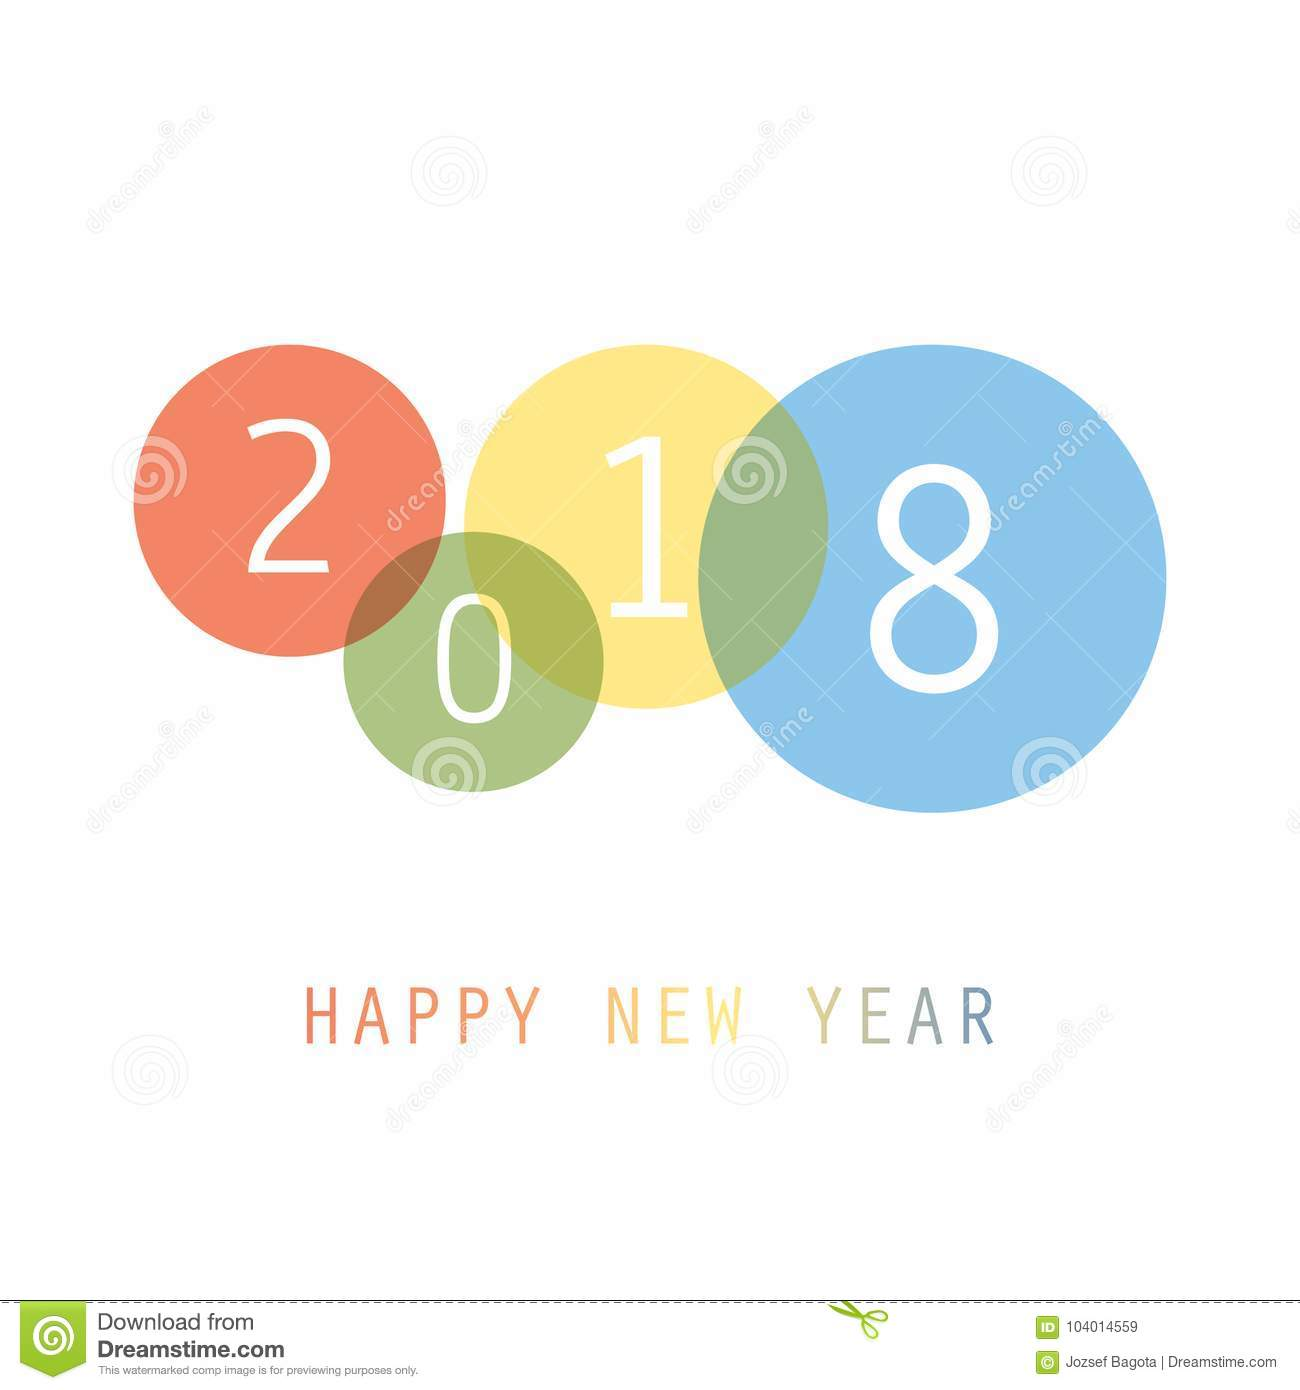 Best Wishes - Simple Colorful New Year Card, Cover Or Background ...